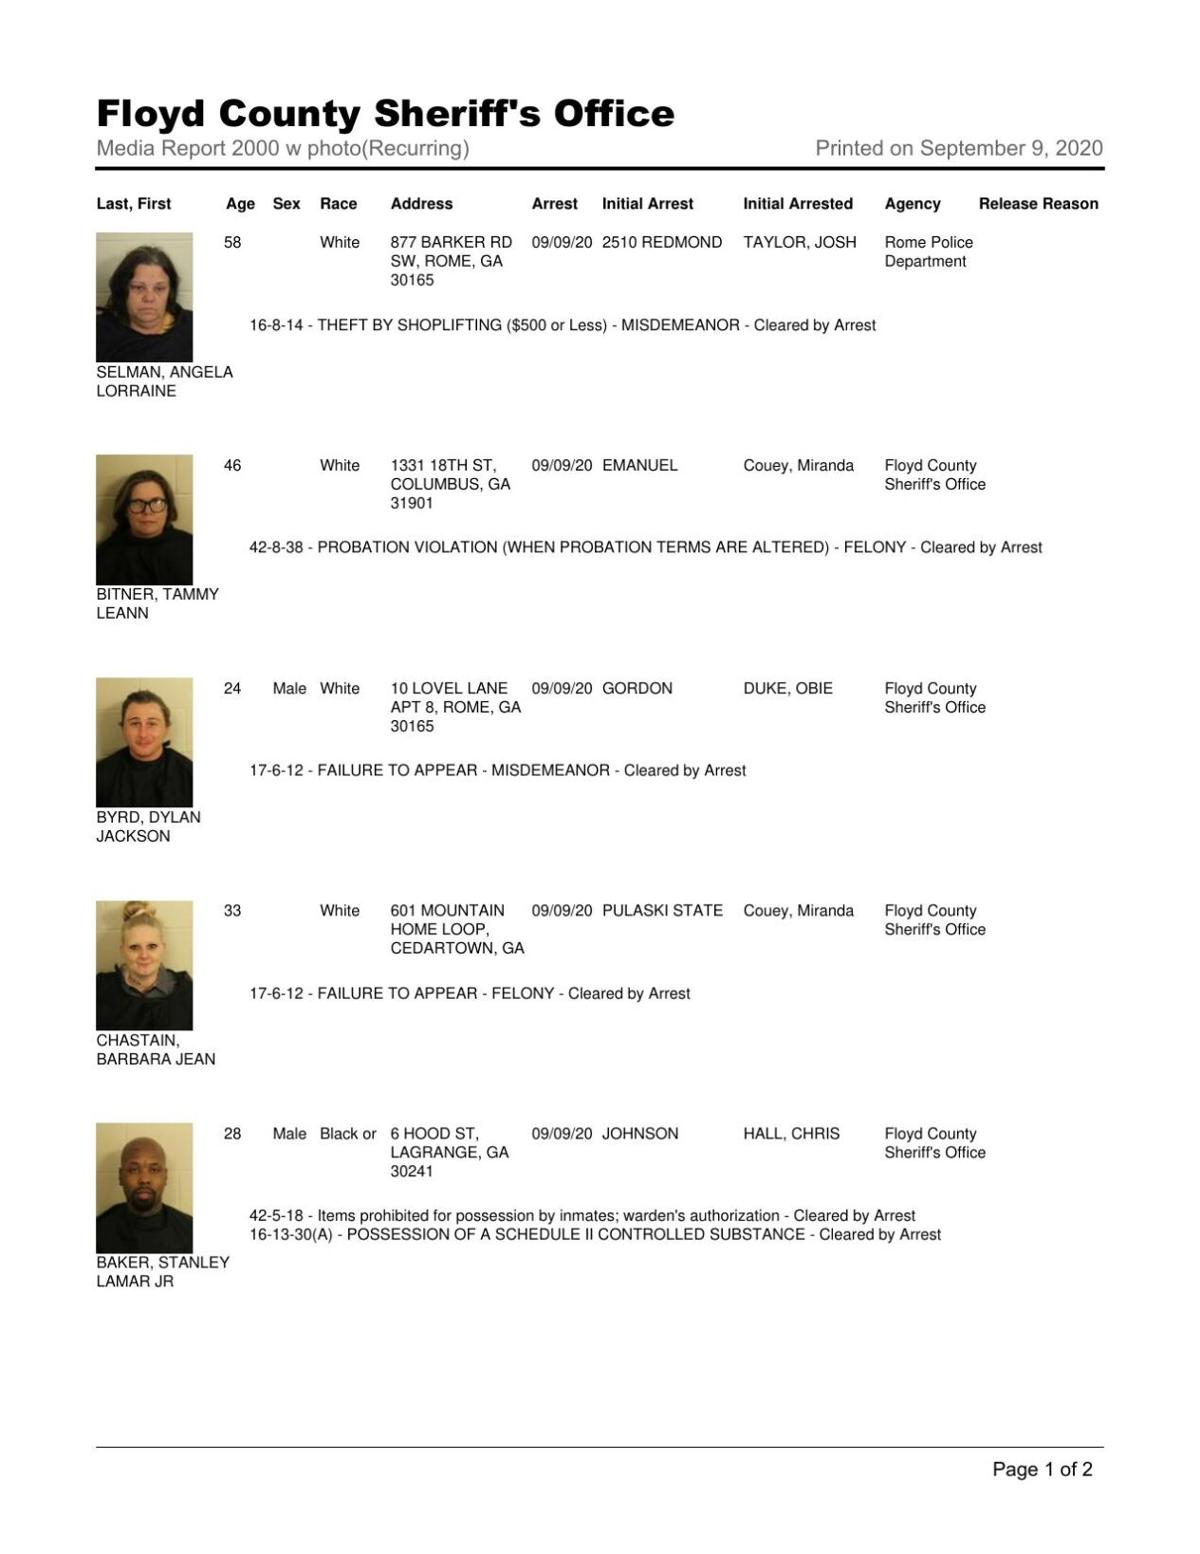 Floyd County Jail report for 8 p.m. Wednesday, Sept. 9